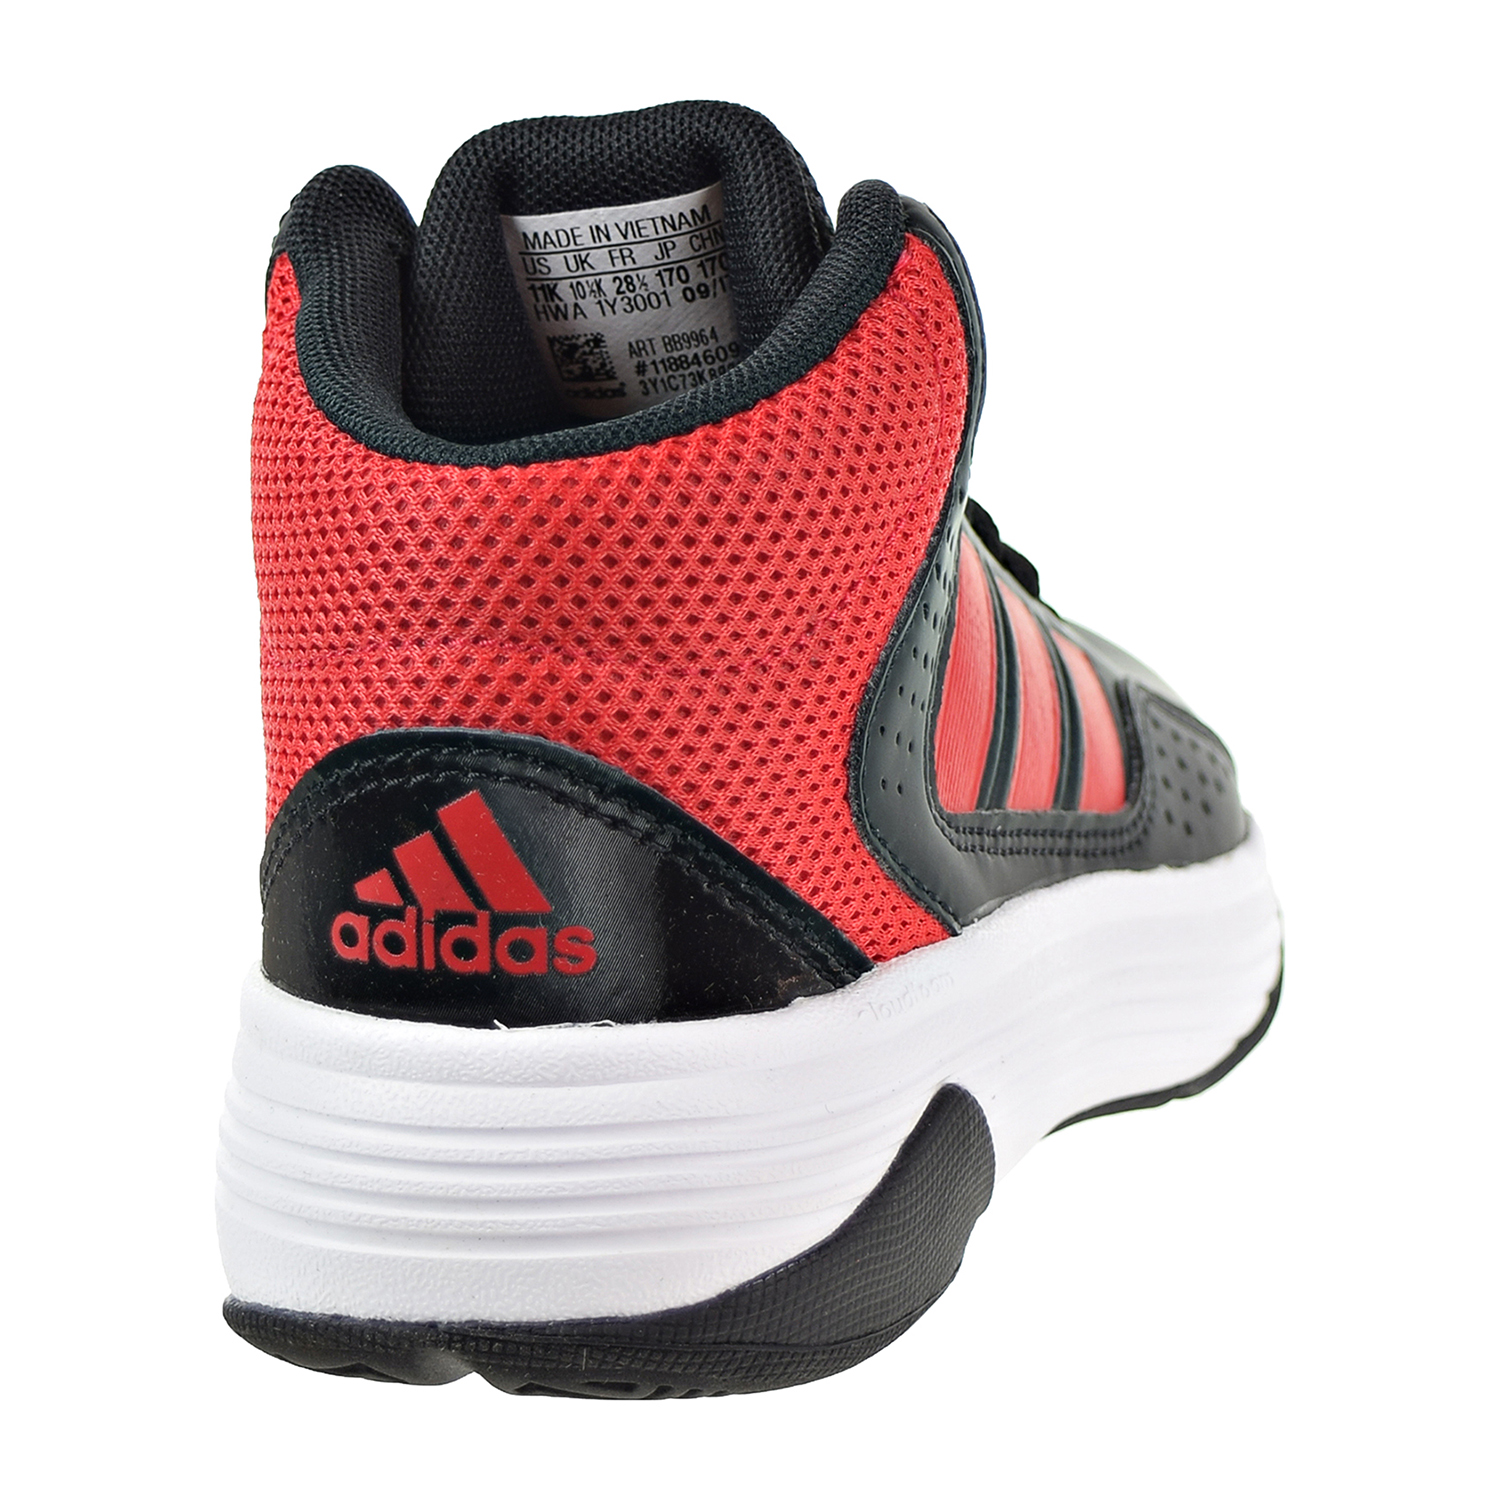 Adidas Cloudfoam Ilation Mid K Big Kids Little Kids Shoes Black Red White  bb9964 c62201ee2